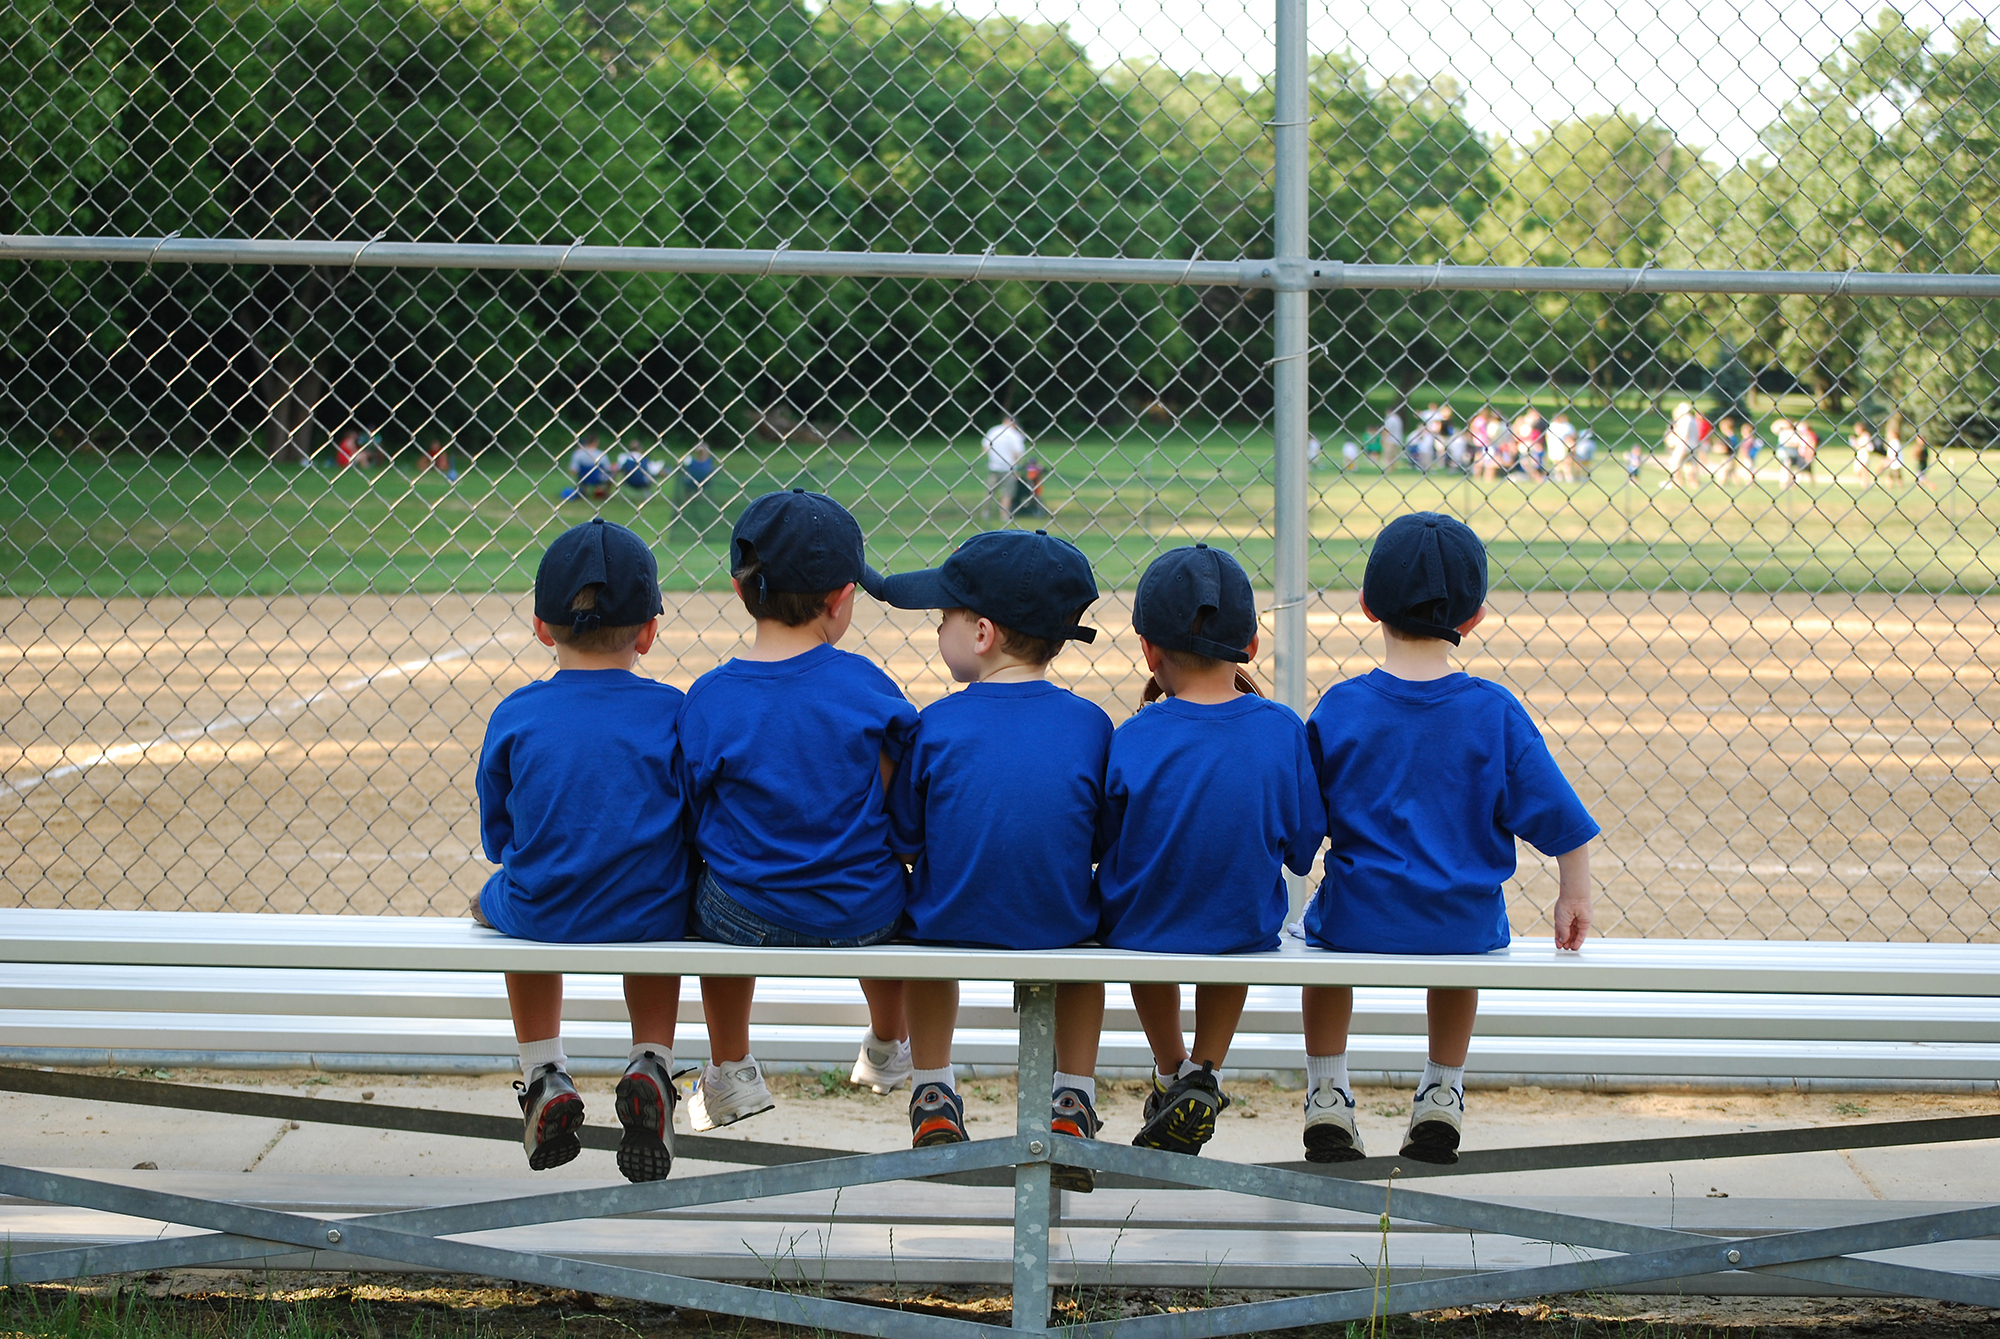 Young baseball team watching a game at a recreation center